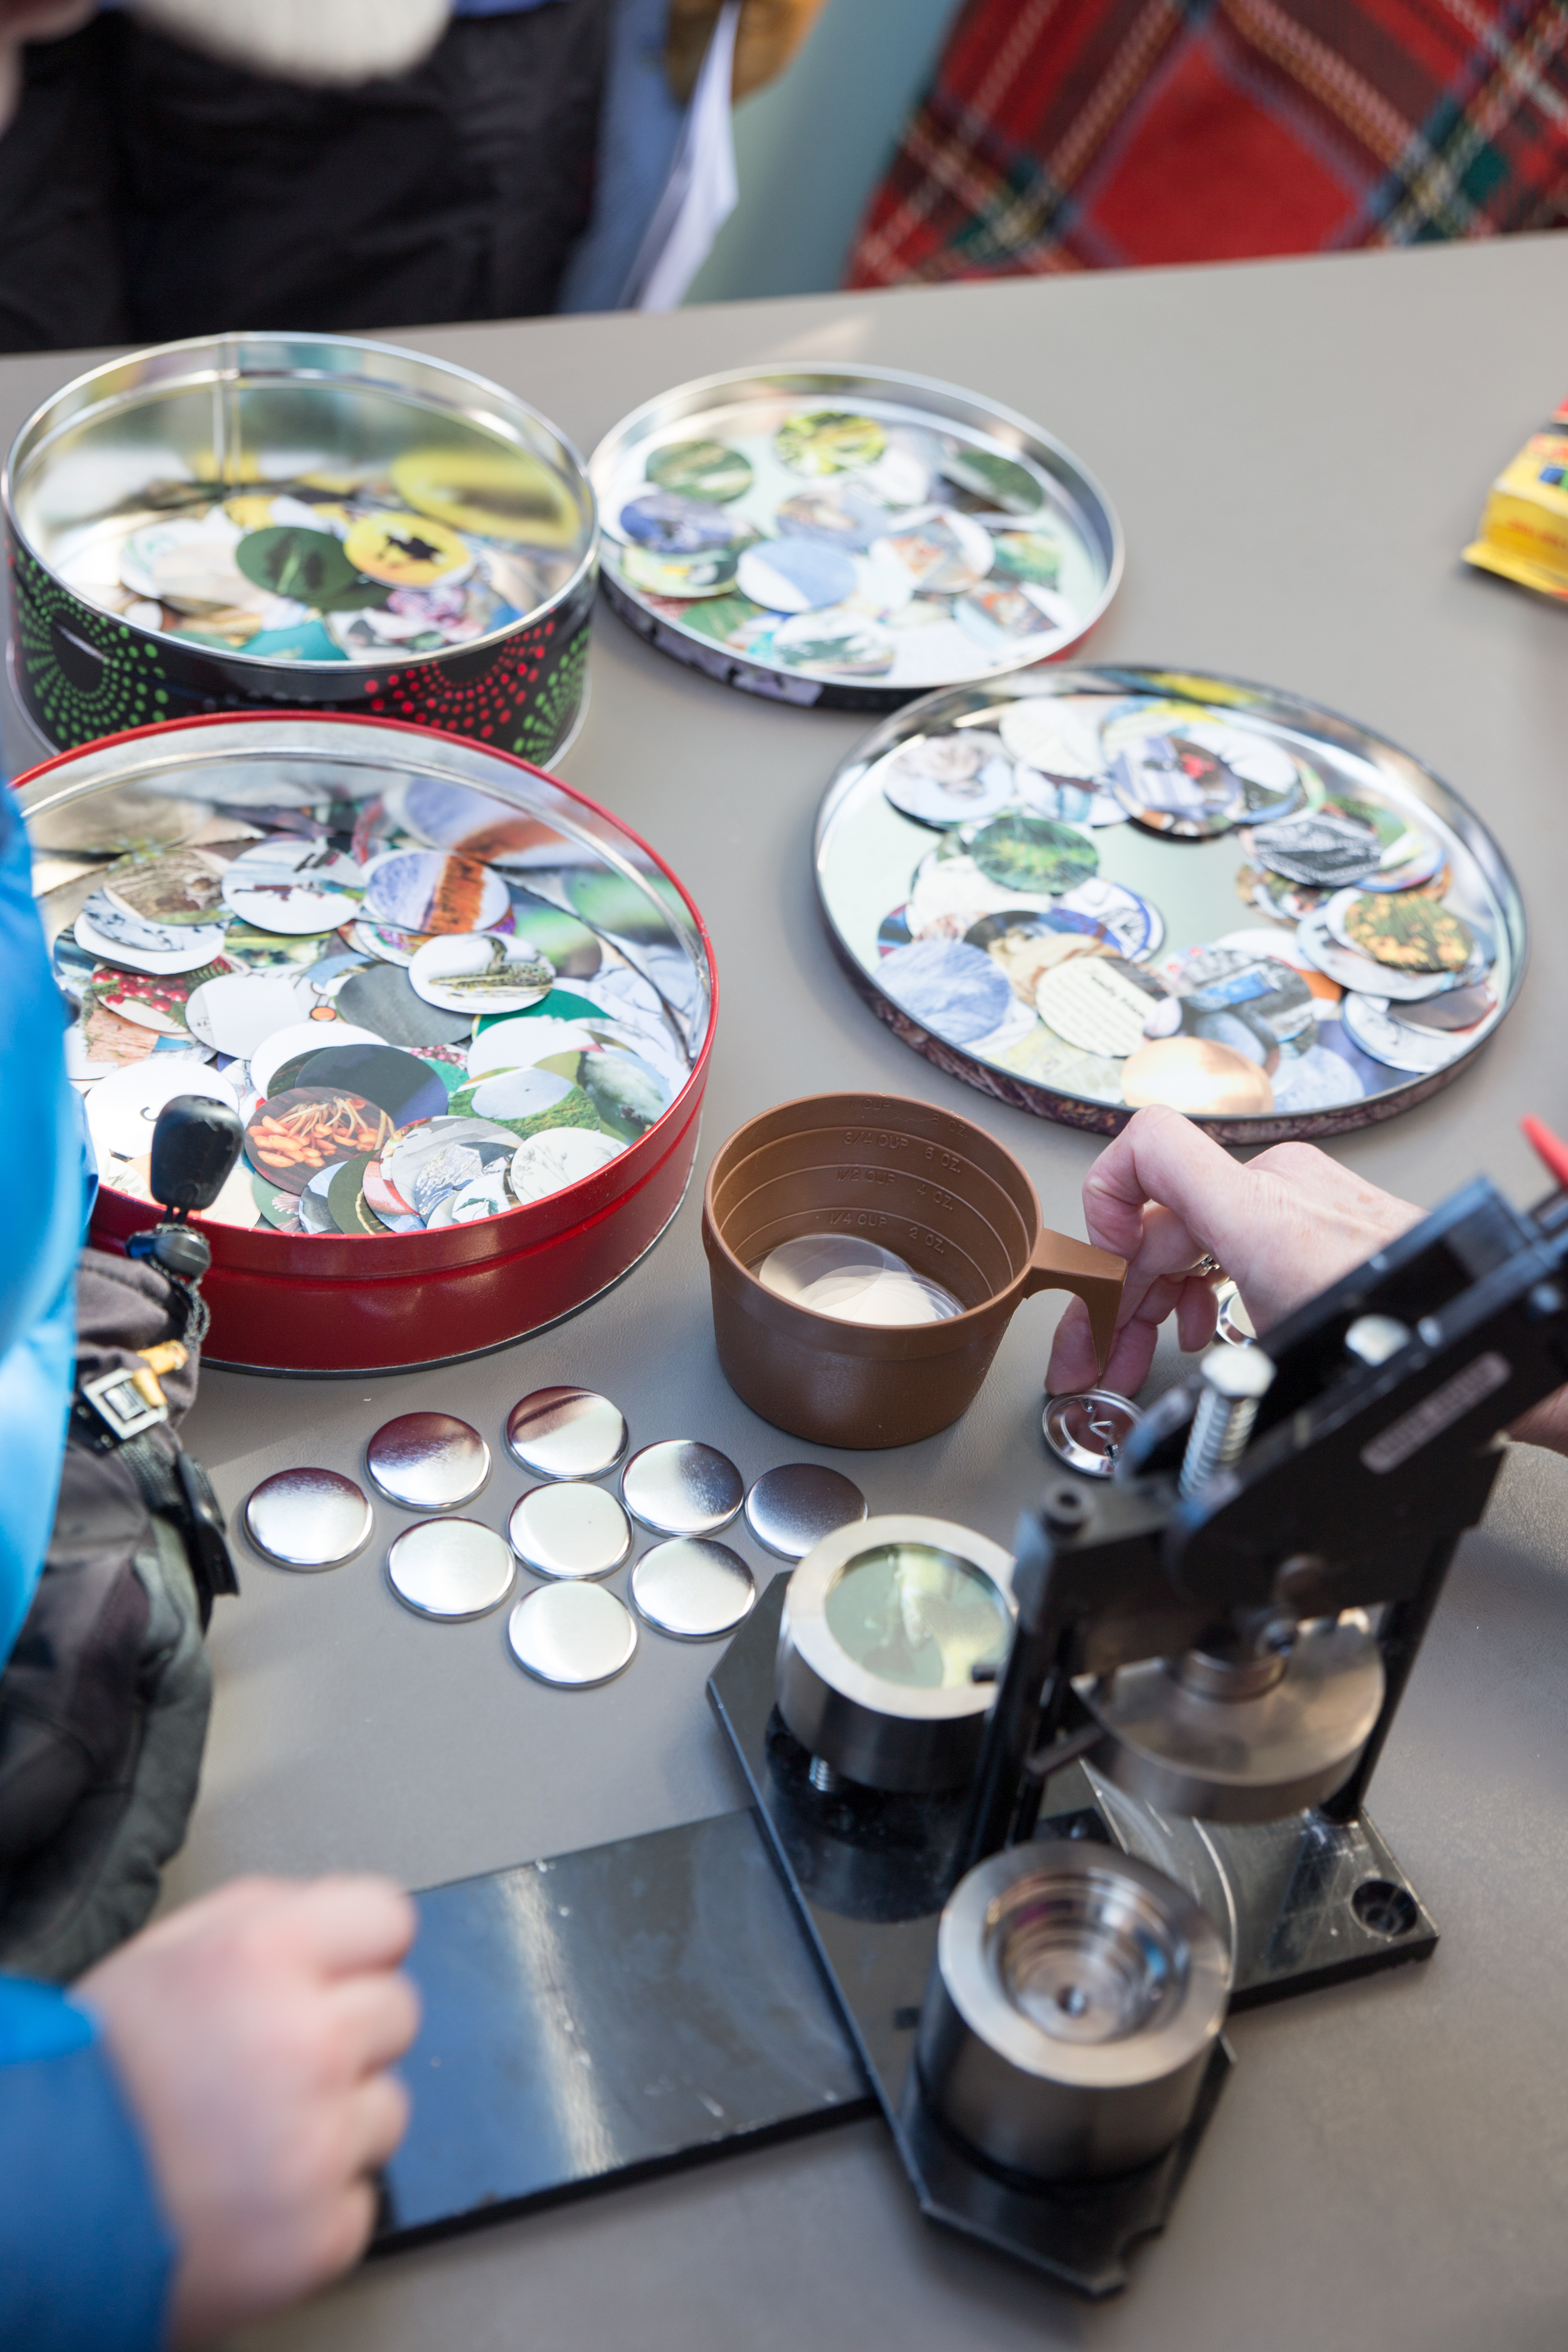 You can make buttons at the Ice Fishing Shanty. This shanty is a dedication of the old ice-fishing days gone by. It is a beautifully done ode to vintage ice fishing shanties.